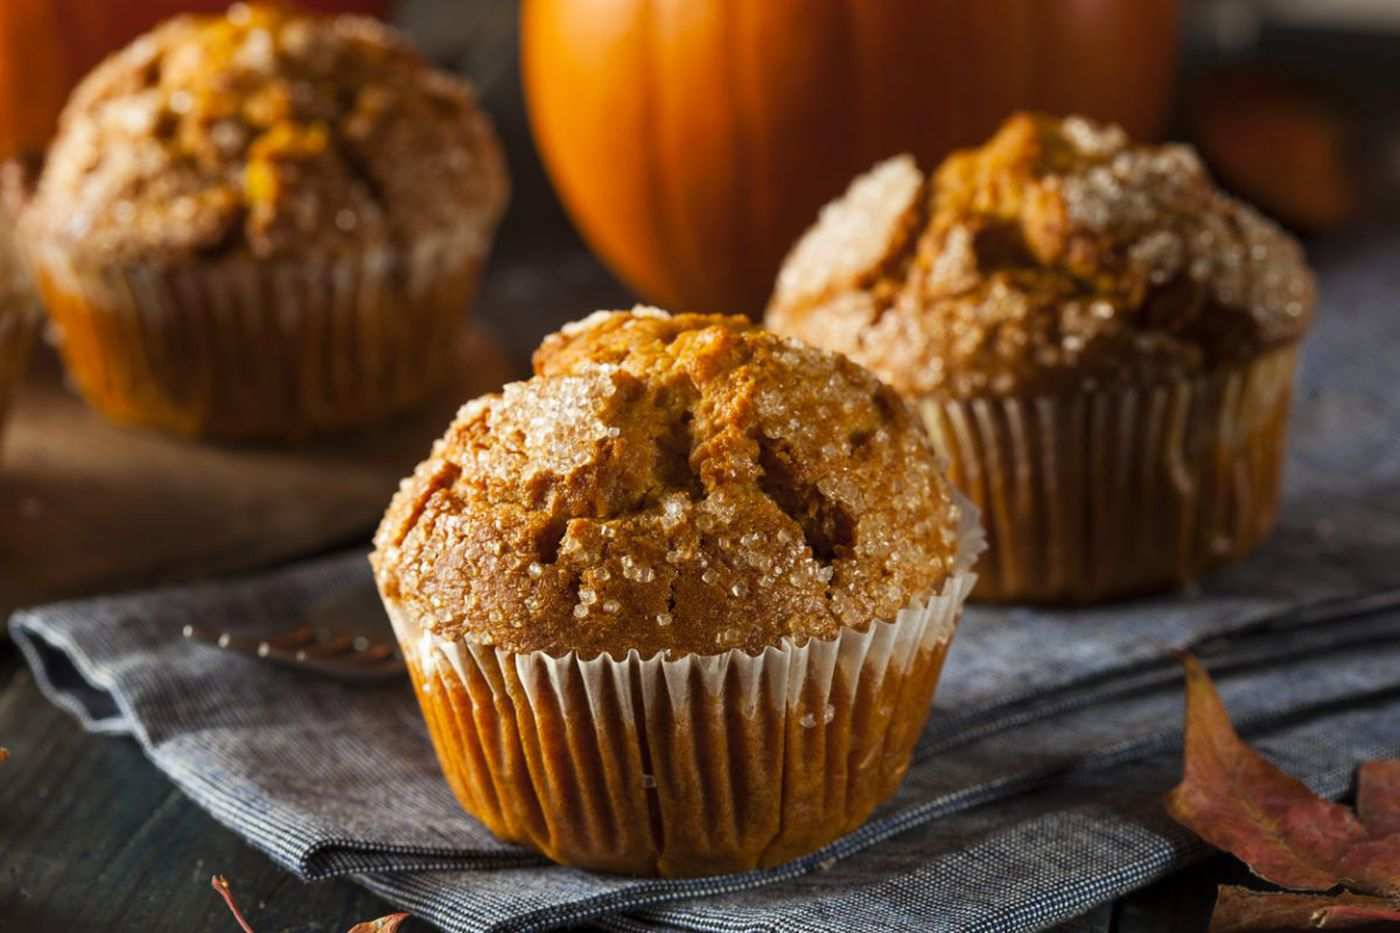 Healthy family recipe: Pumpkin spiced baked oatmeal muffins